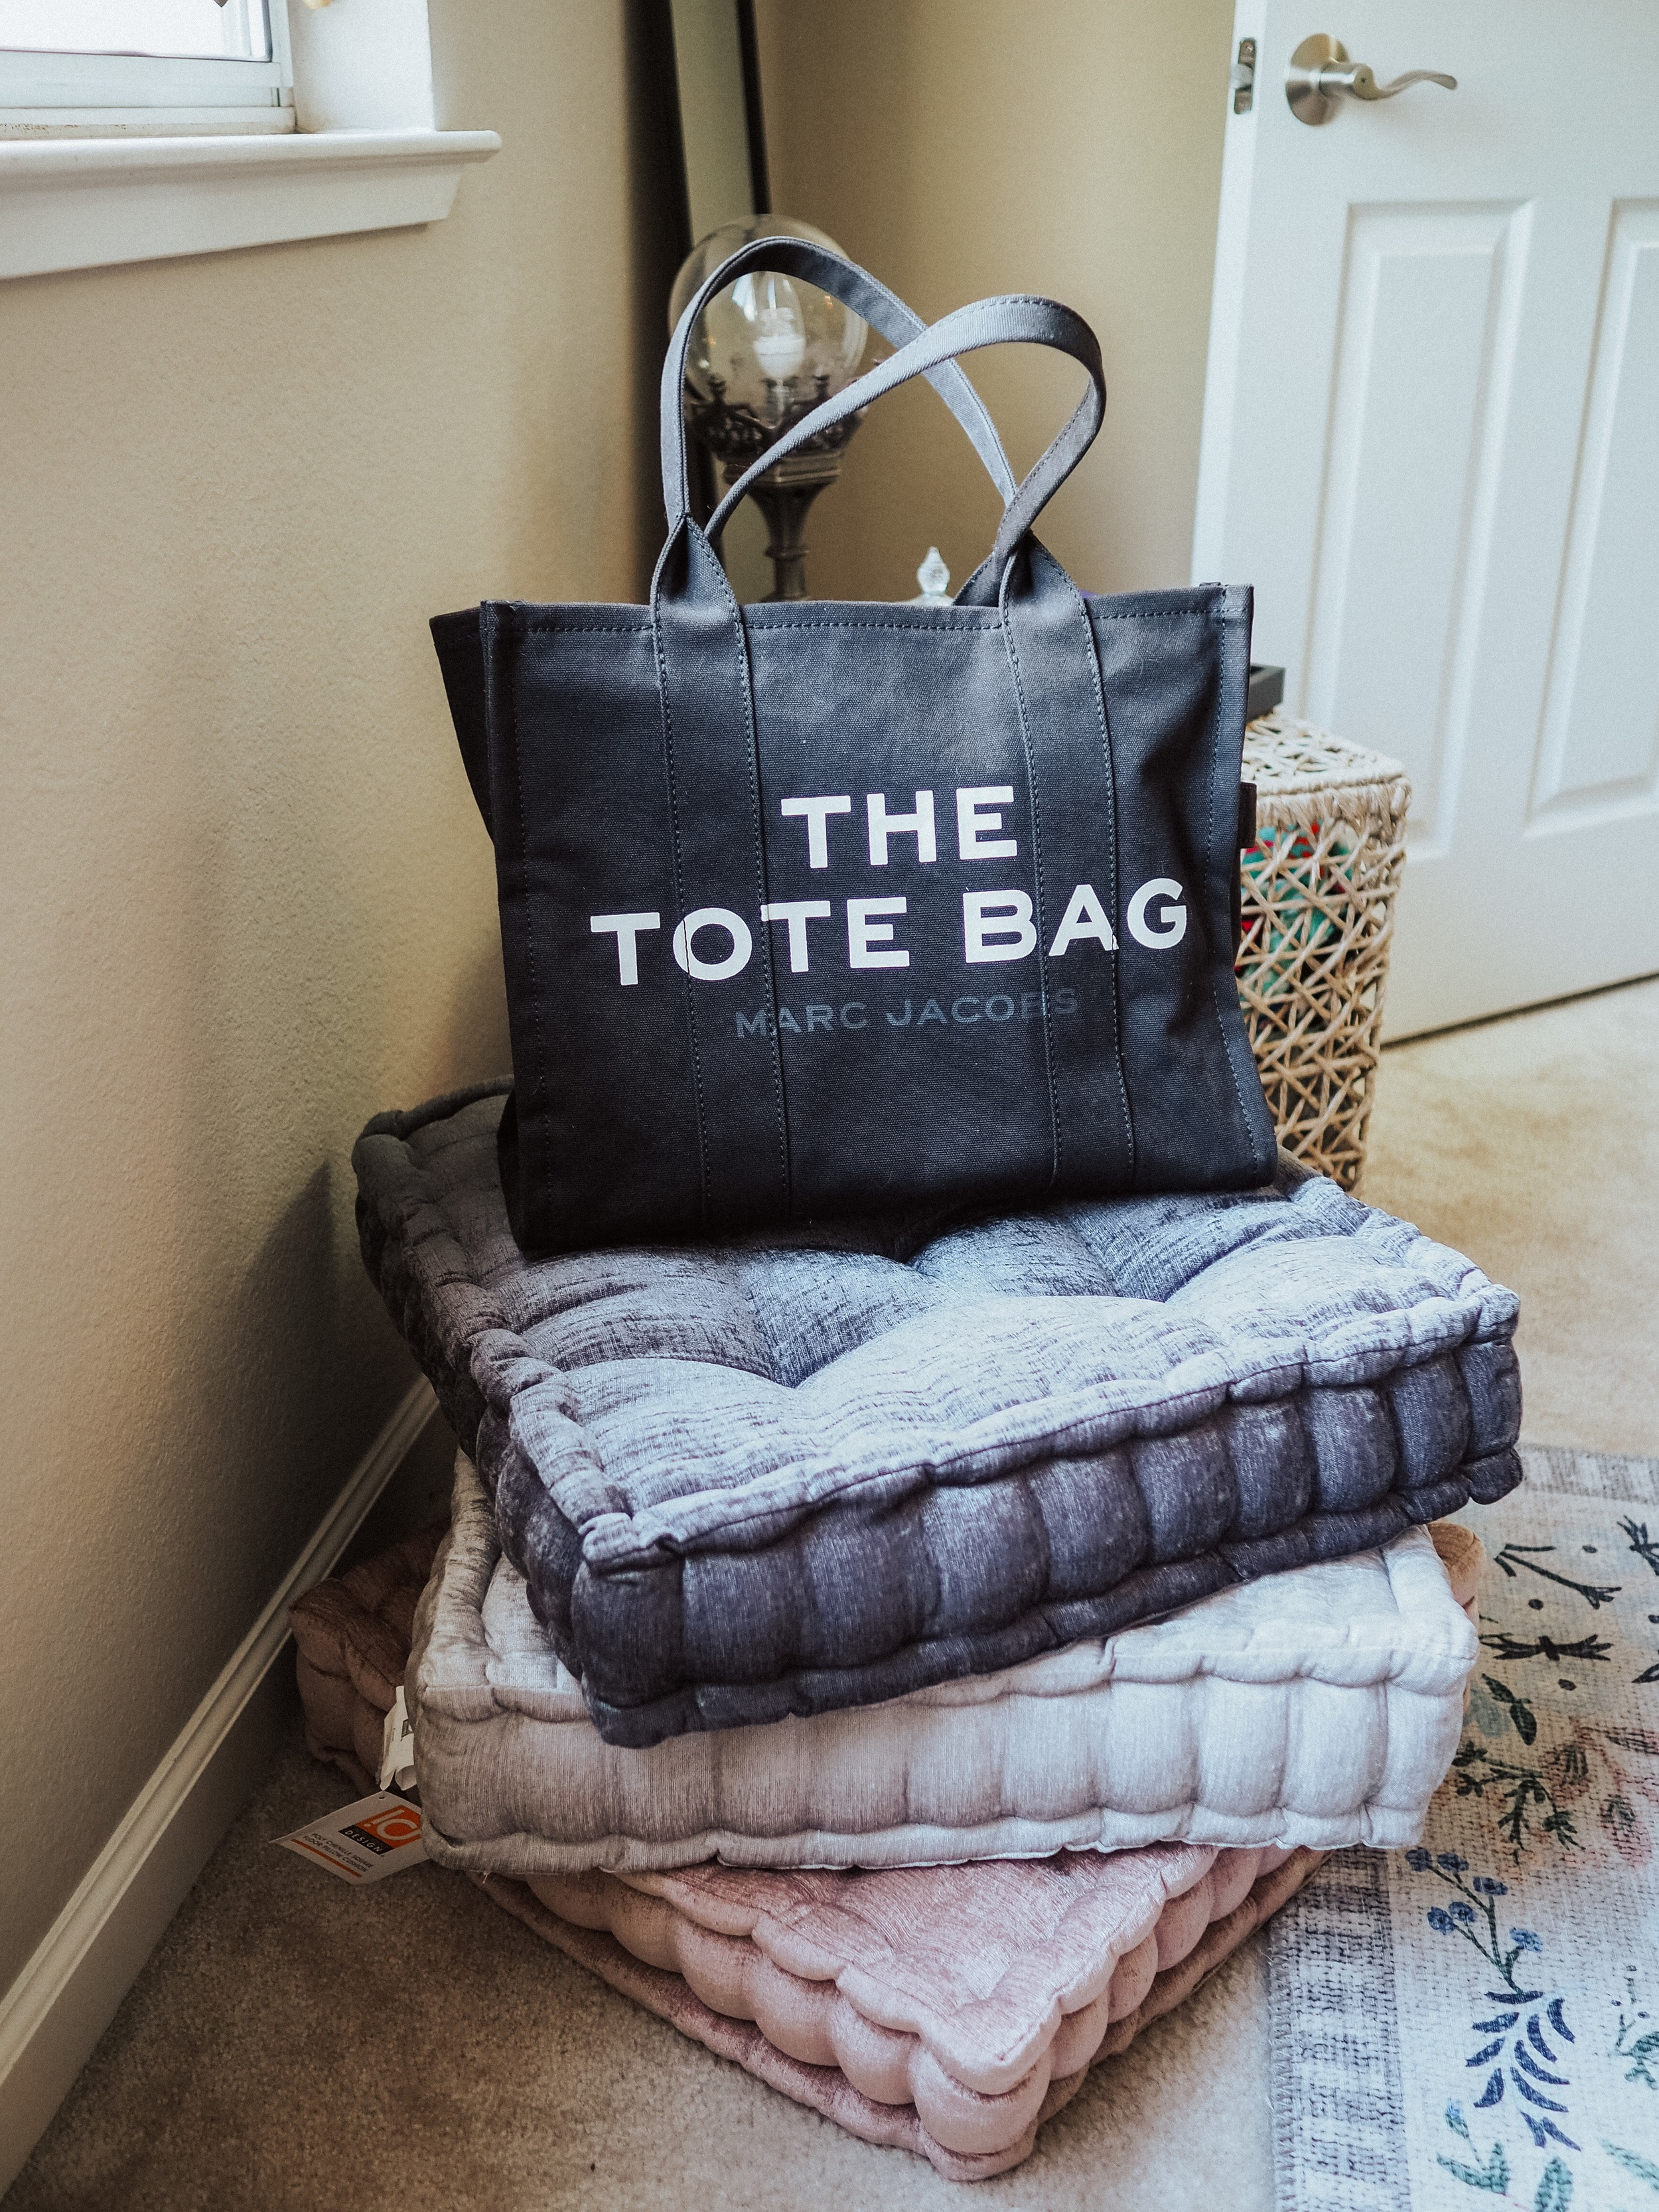 The Dior Book Tote is beautiful - but expensive. This Dior Book Tote dupe is a great, affordable option compared to the real thing.